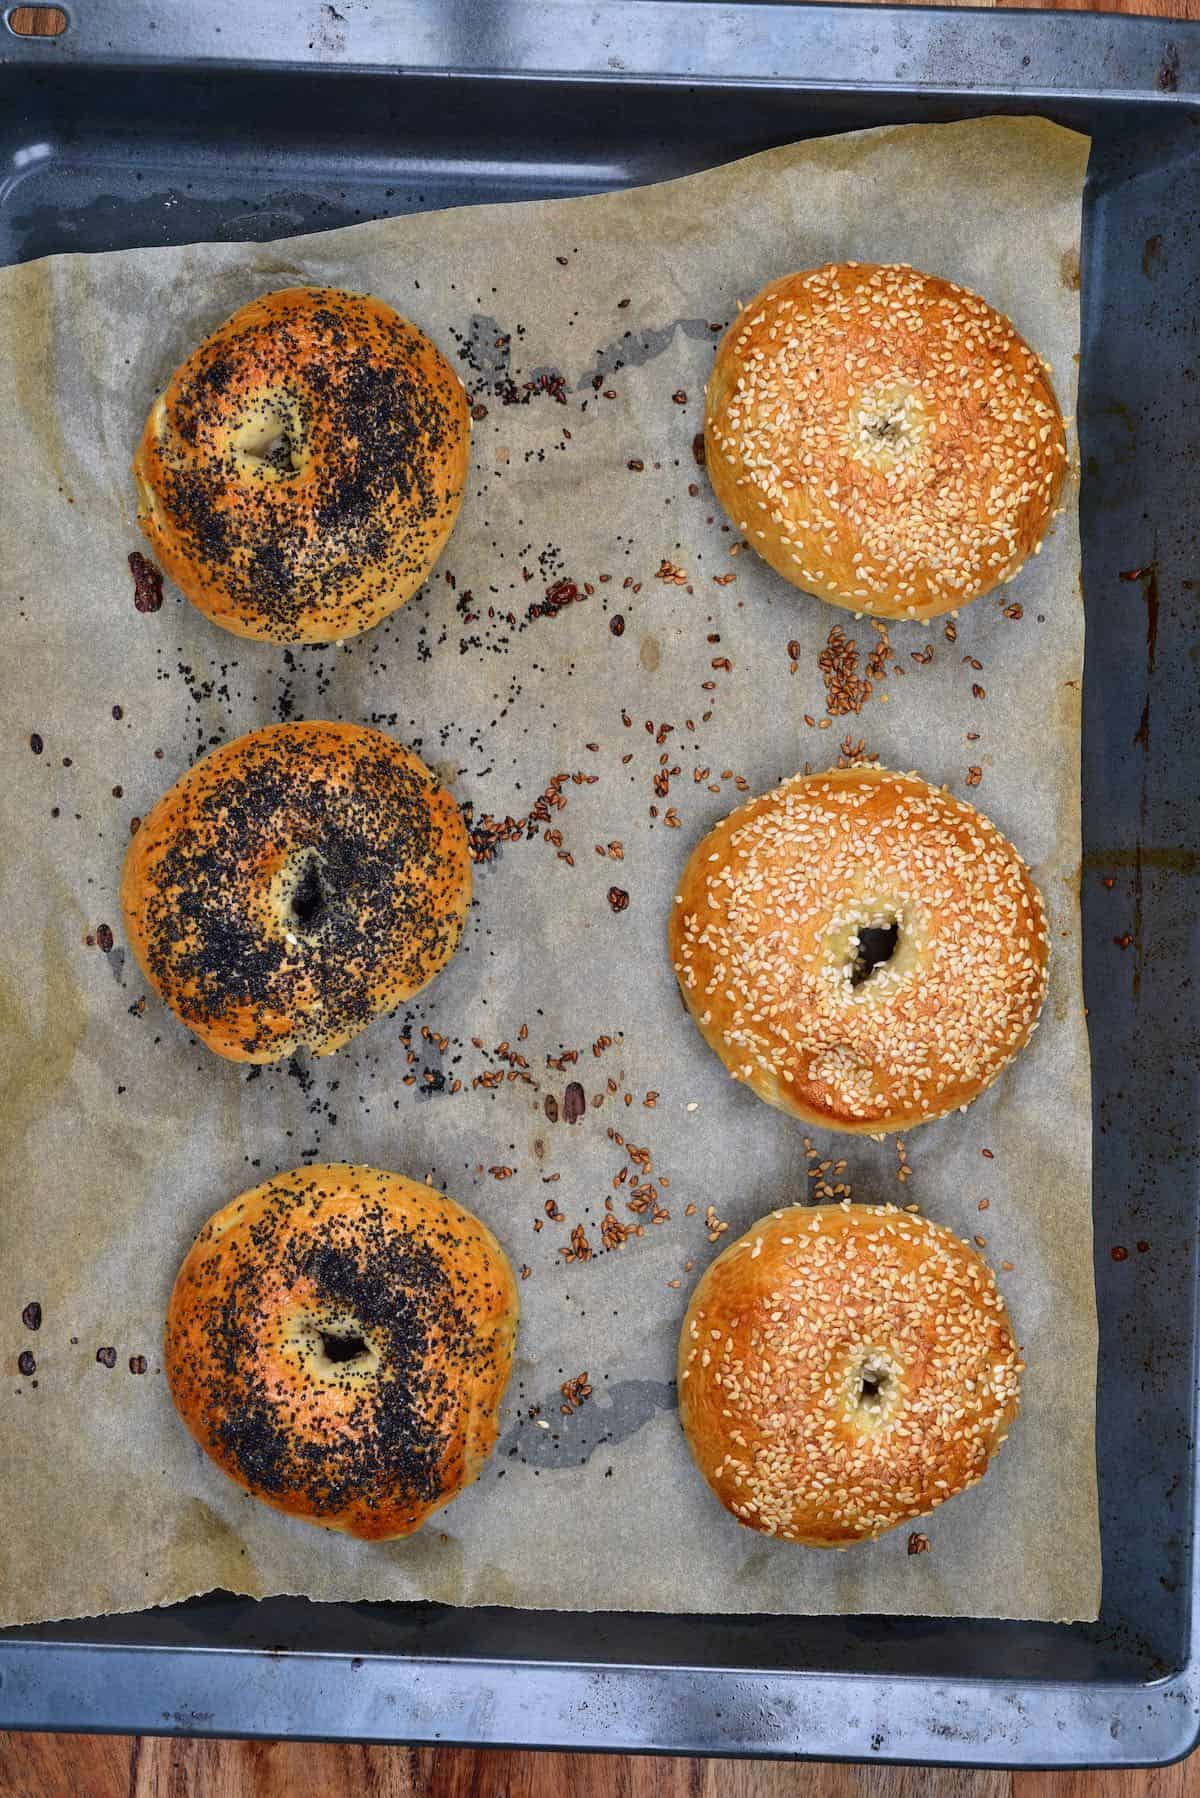 Six bagels in a baking tray with different seeds on top